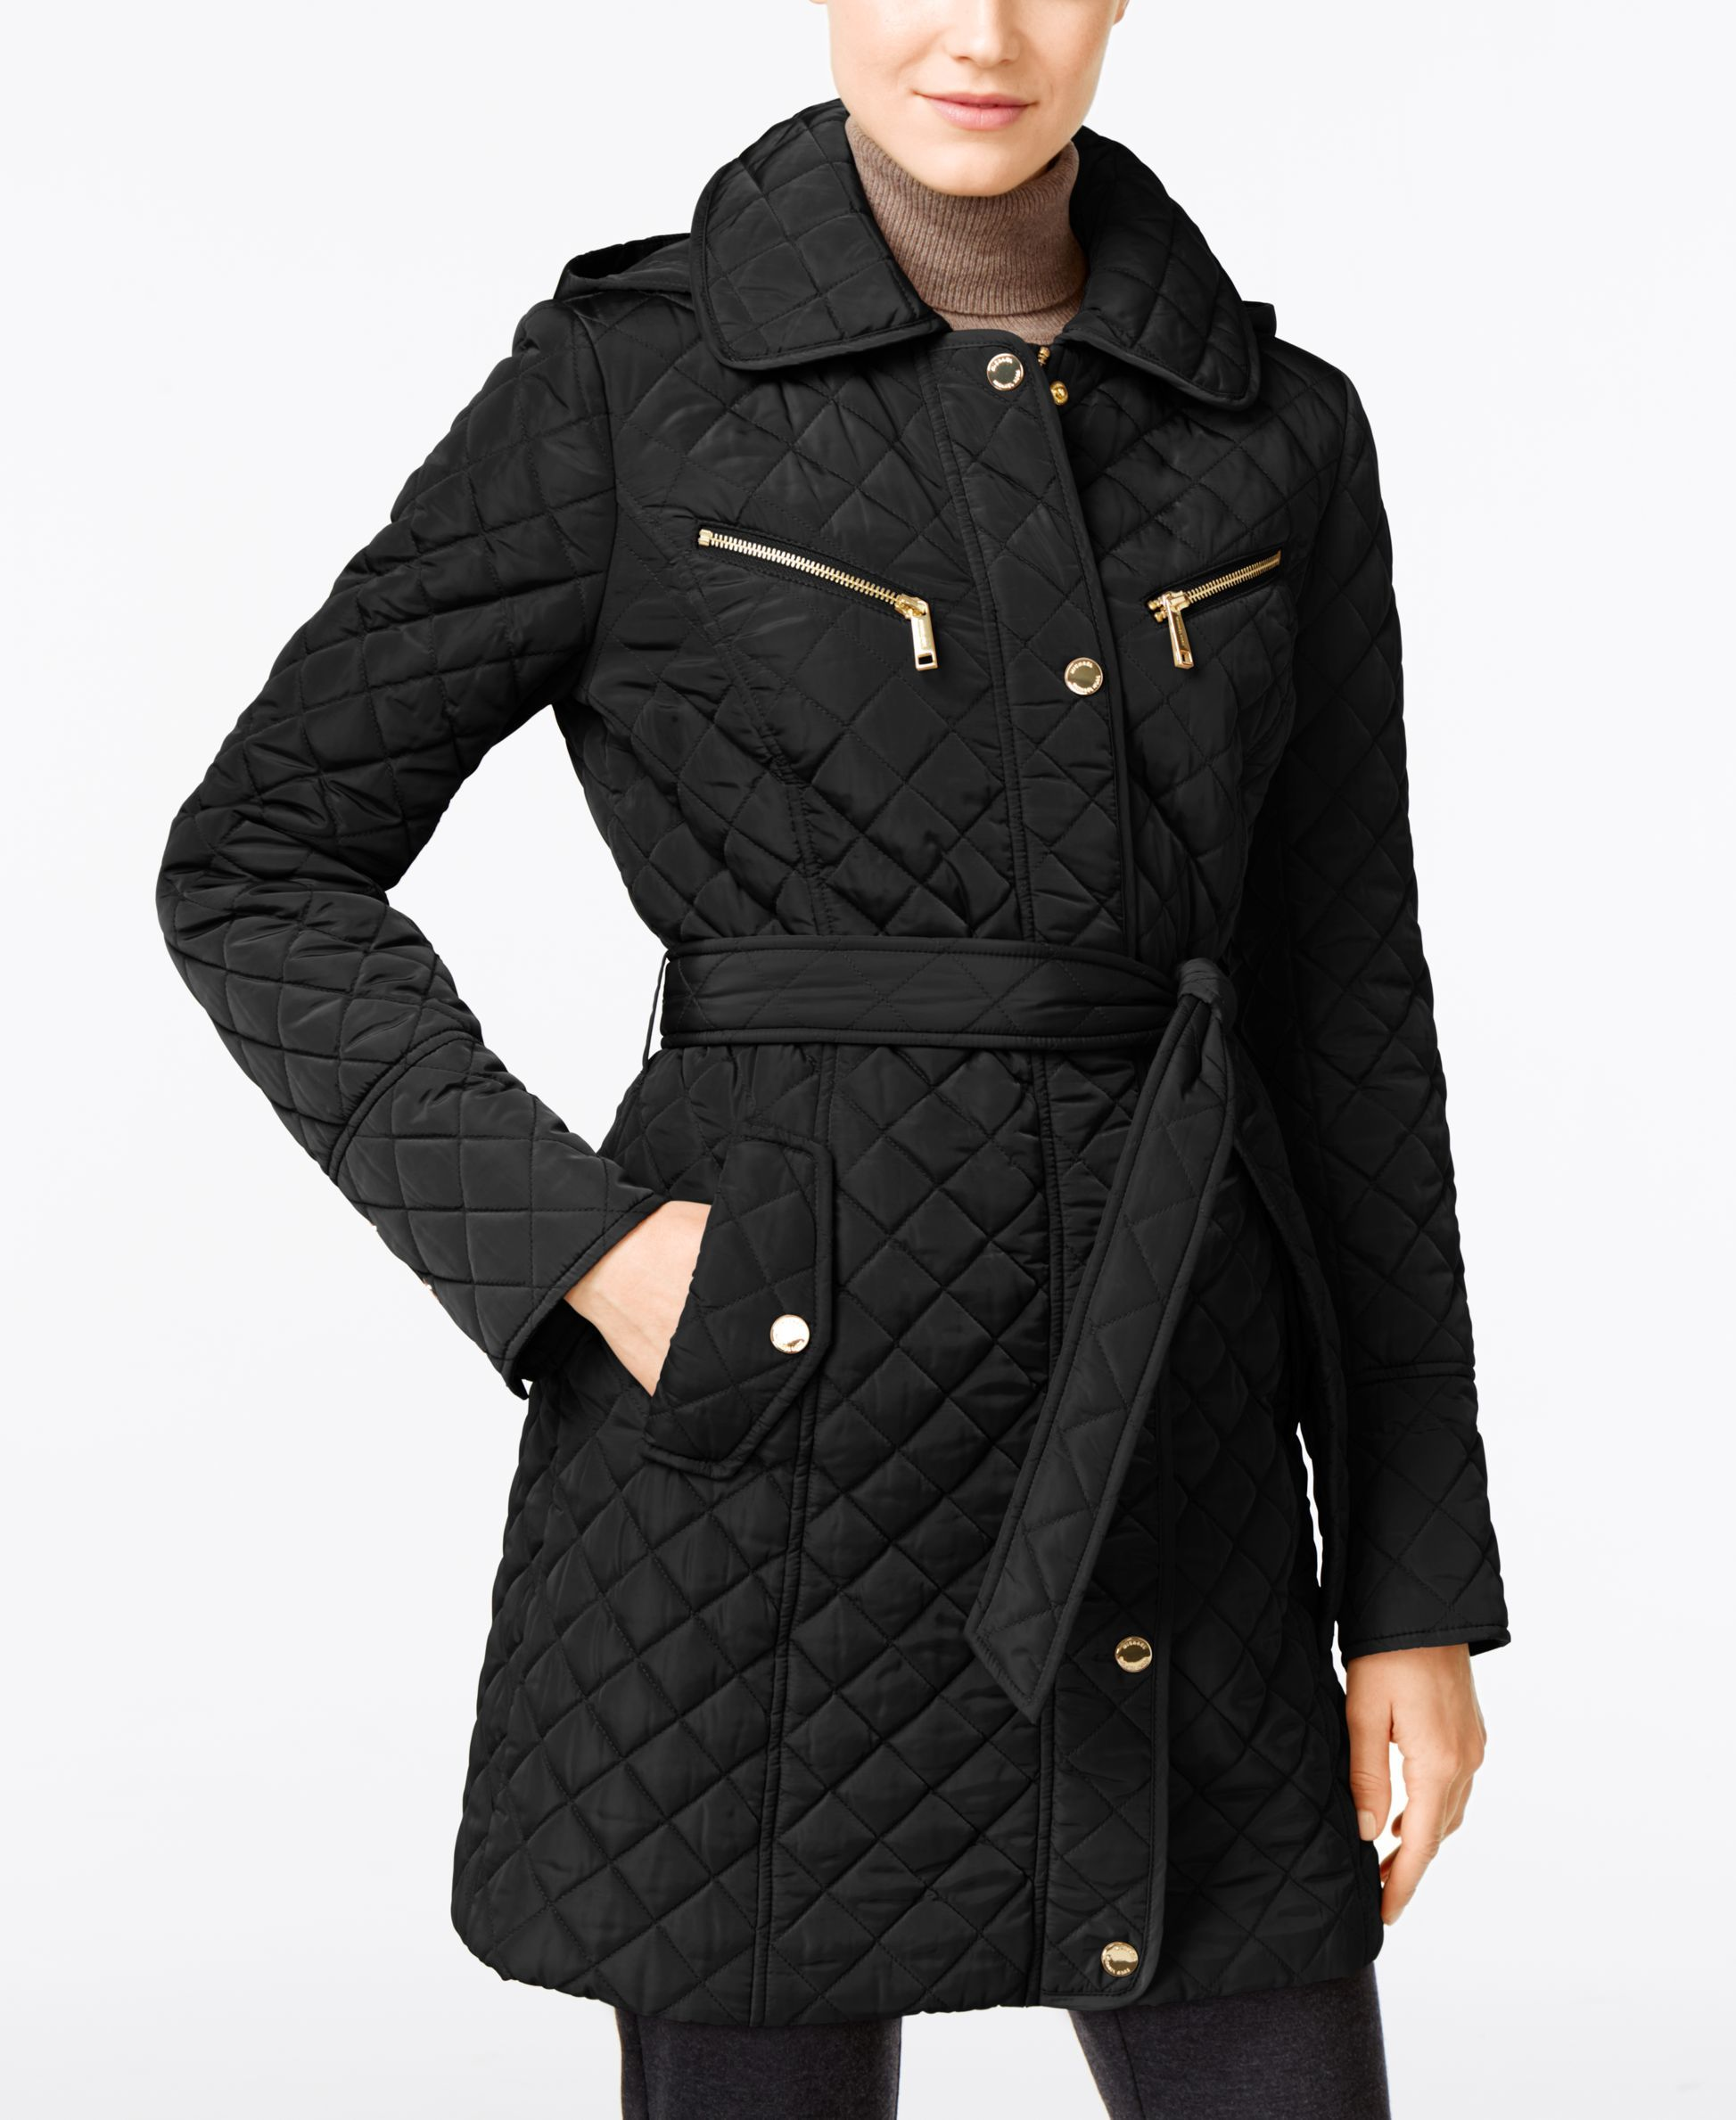 ad383975930 Women s Black Hooded Quilted Belted Jacket